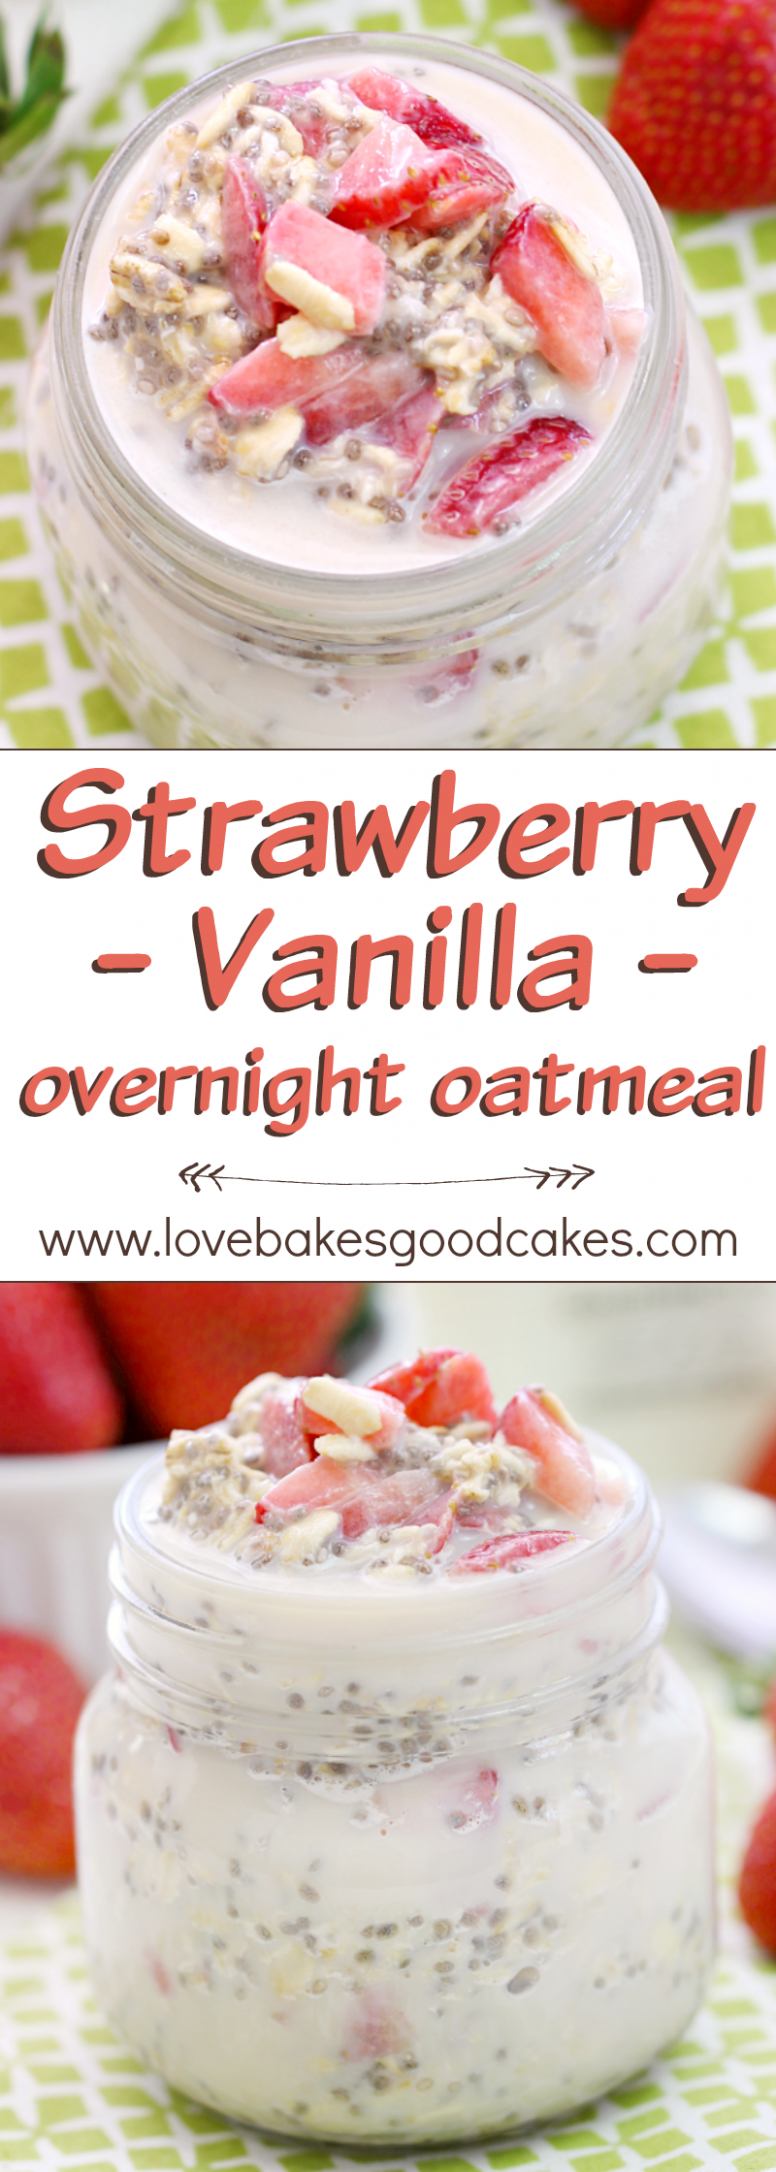 Strawberry Vanilla Overnight Oatmeal | Recipe | !!Love ...